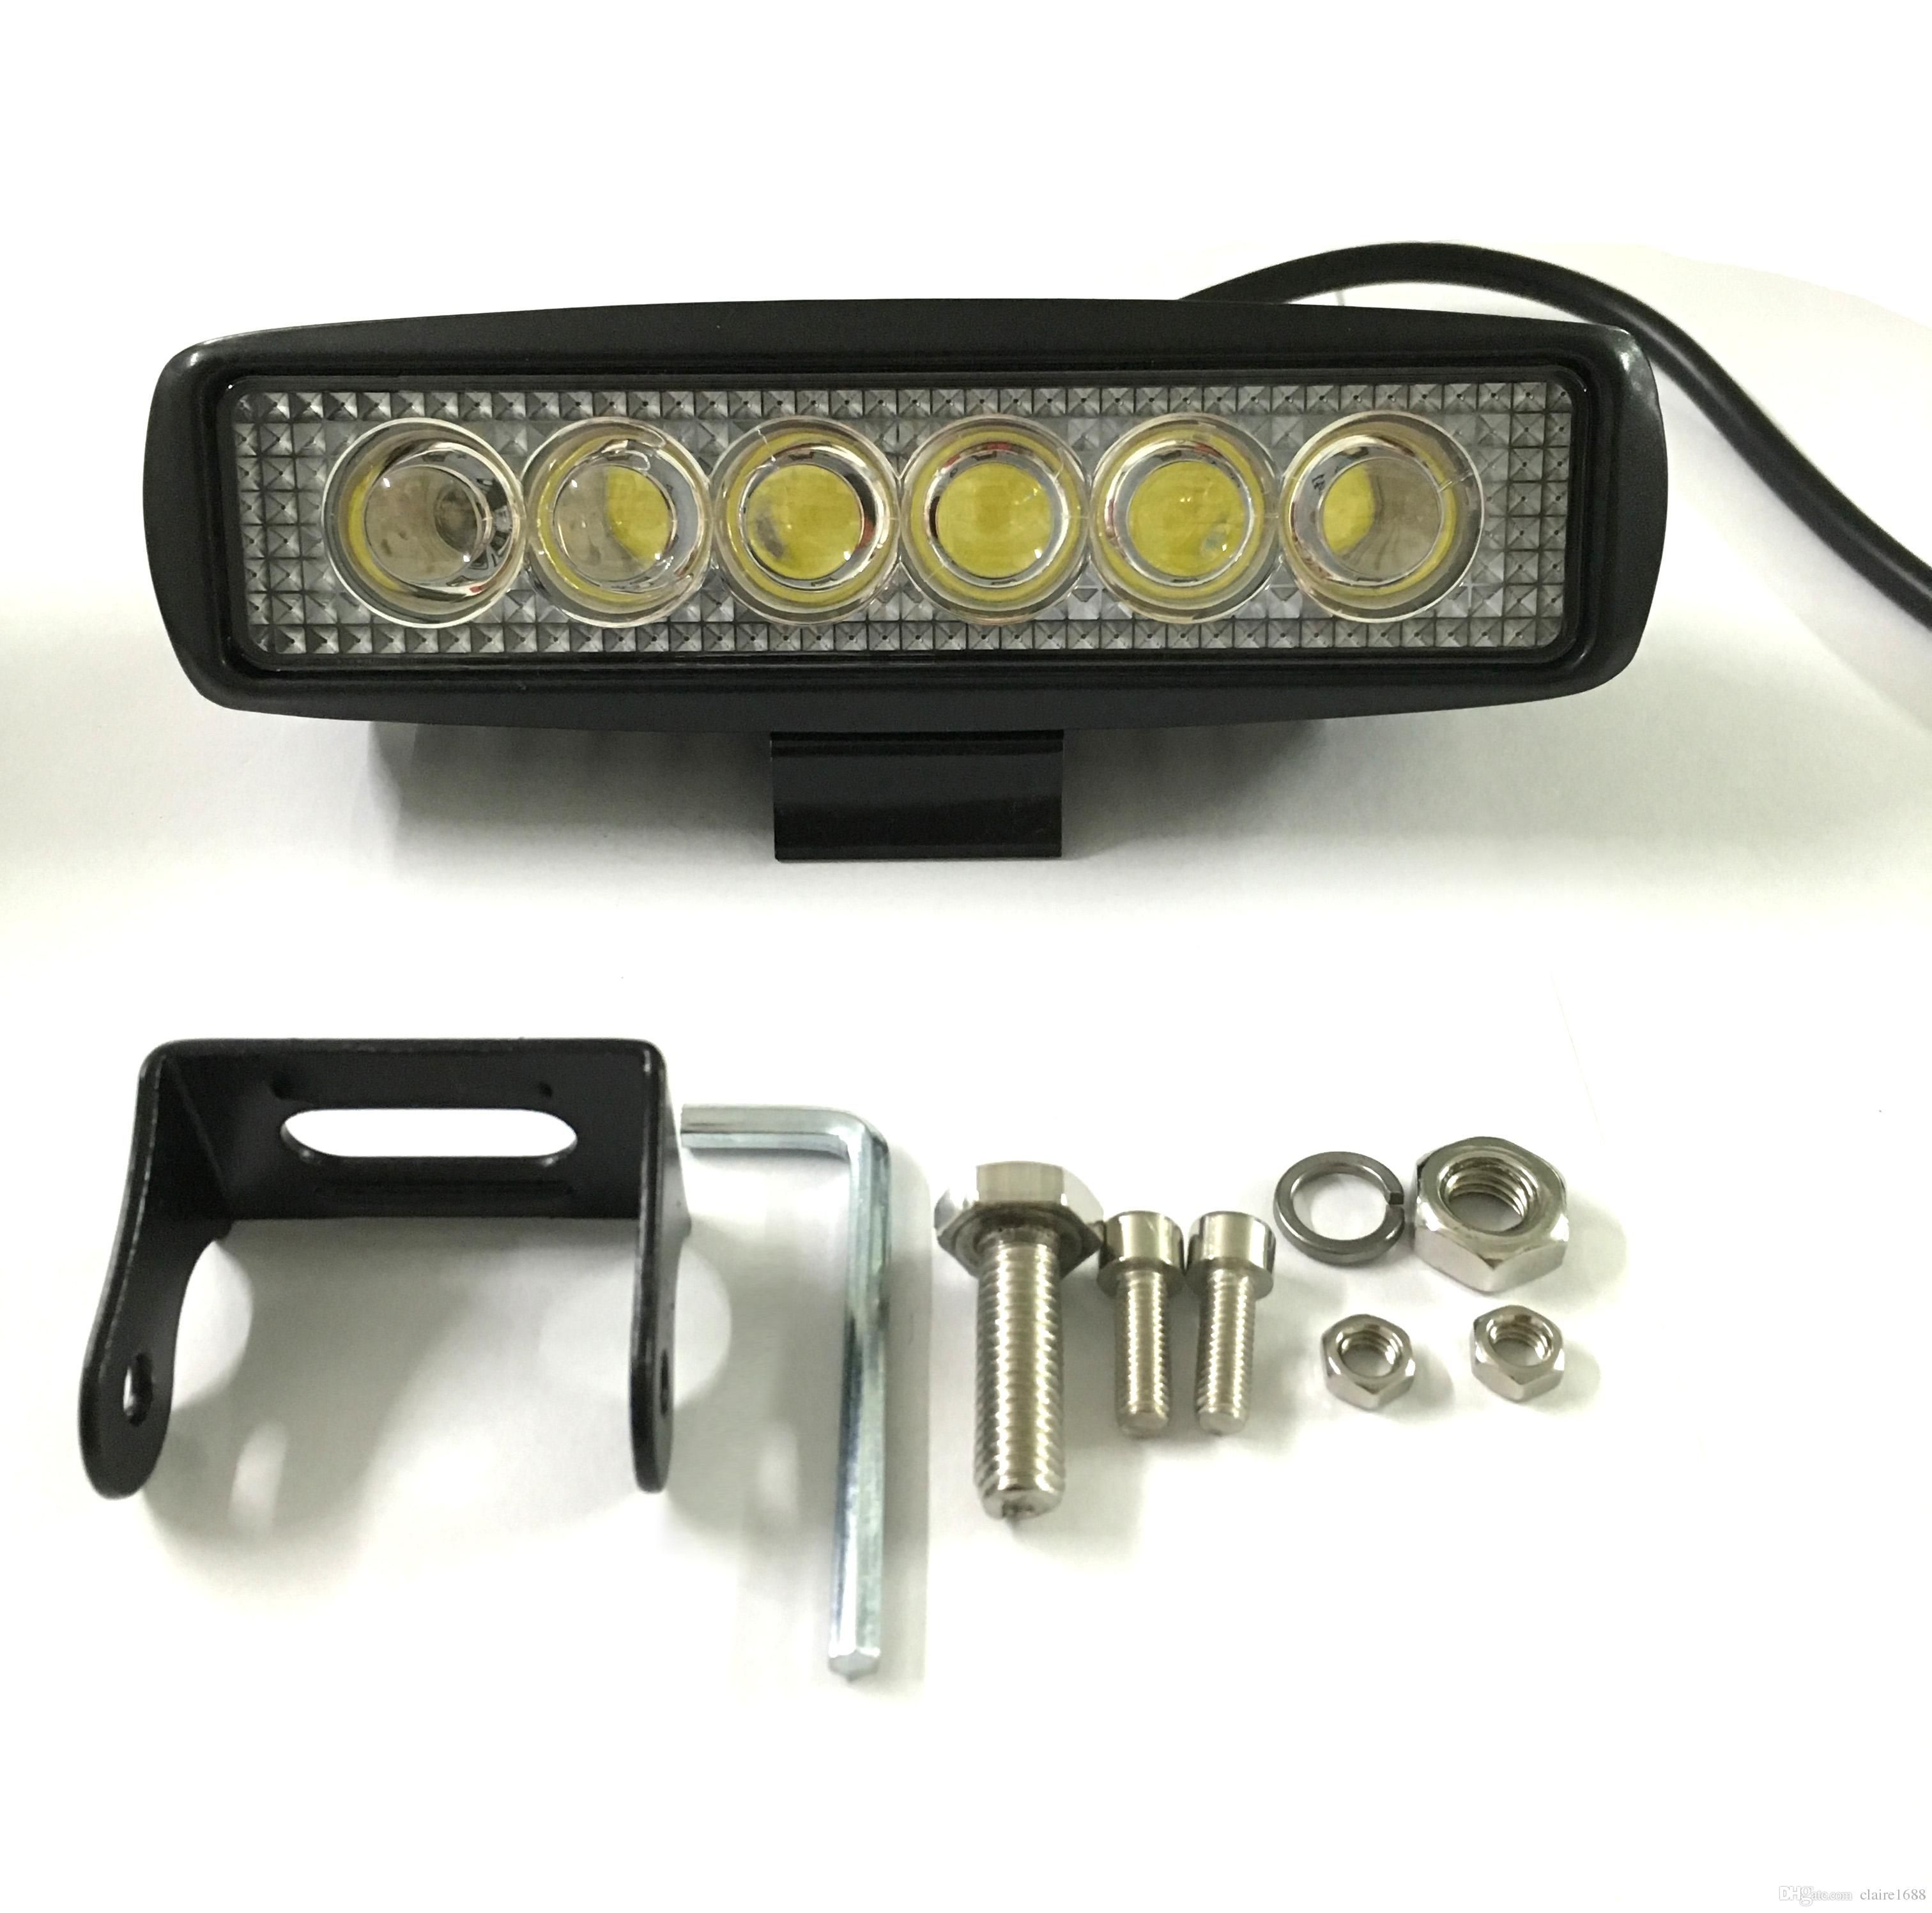 6 inch 18W LED Work Light Lamp for Motorcycle Tractor Boat f Road